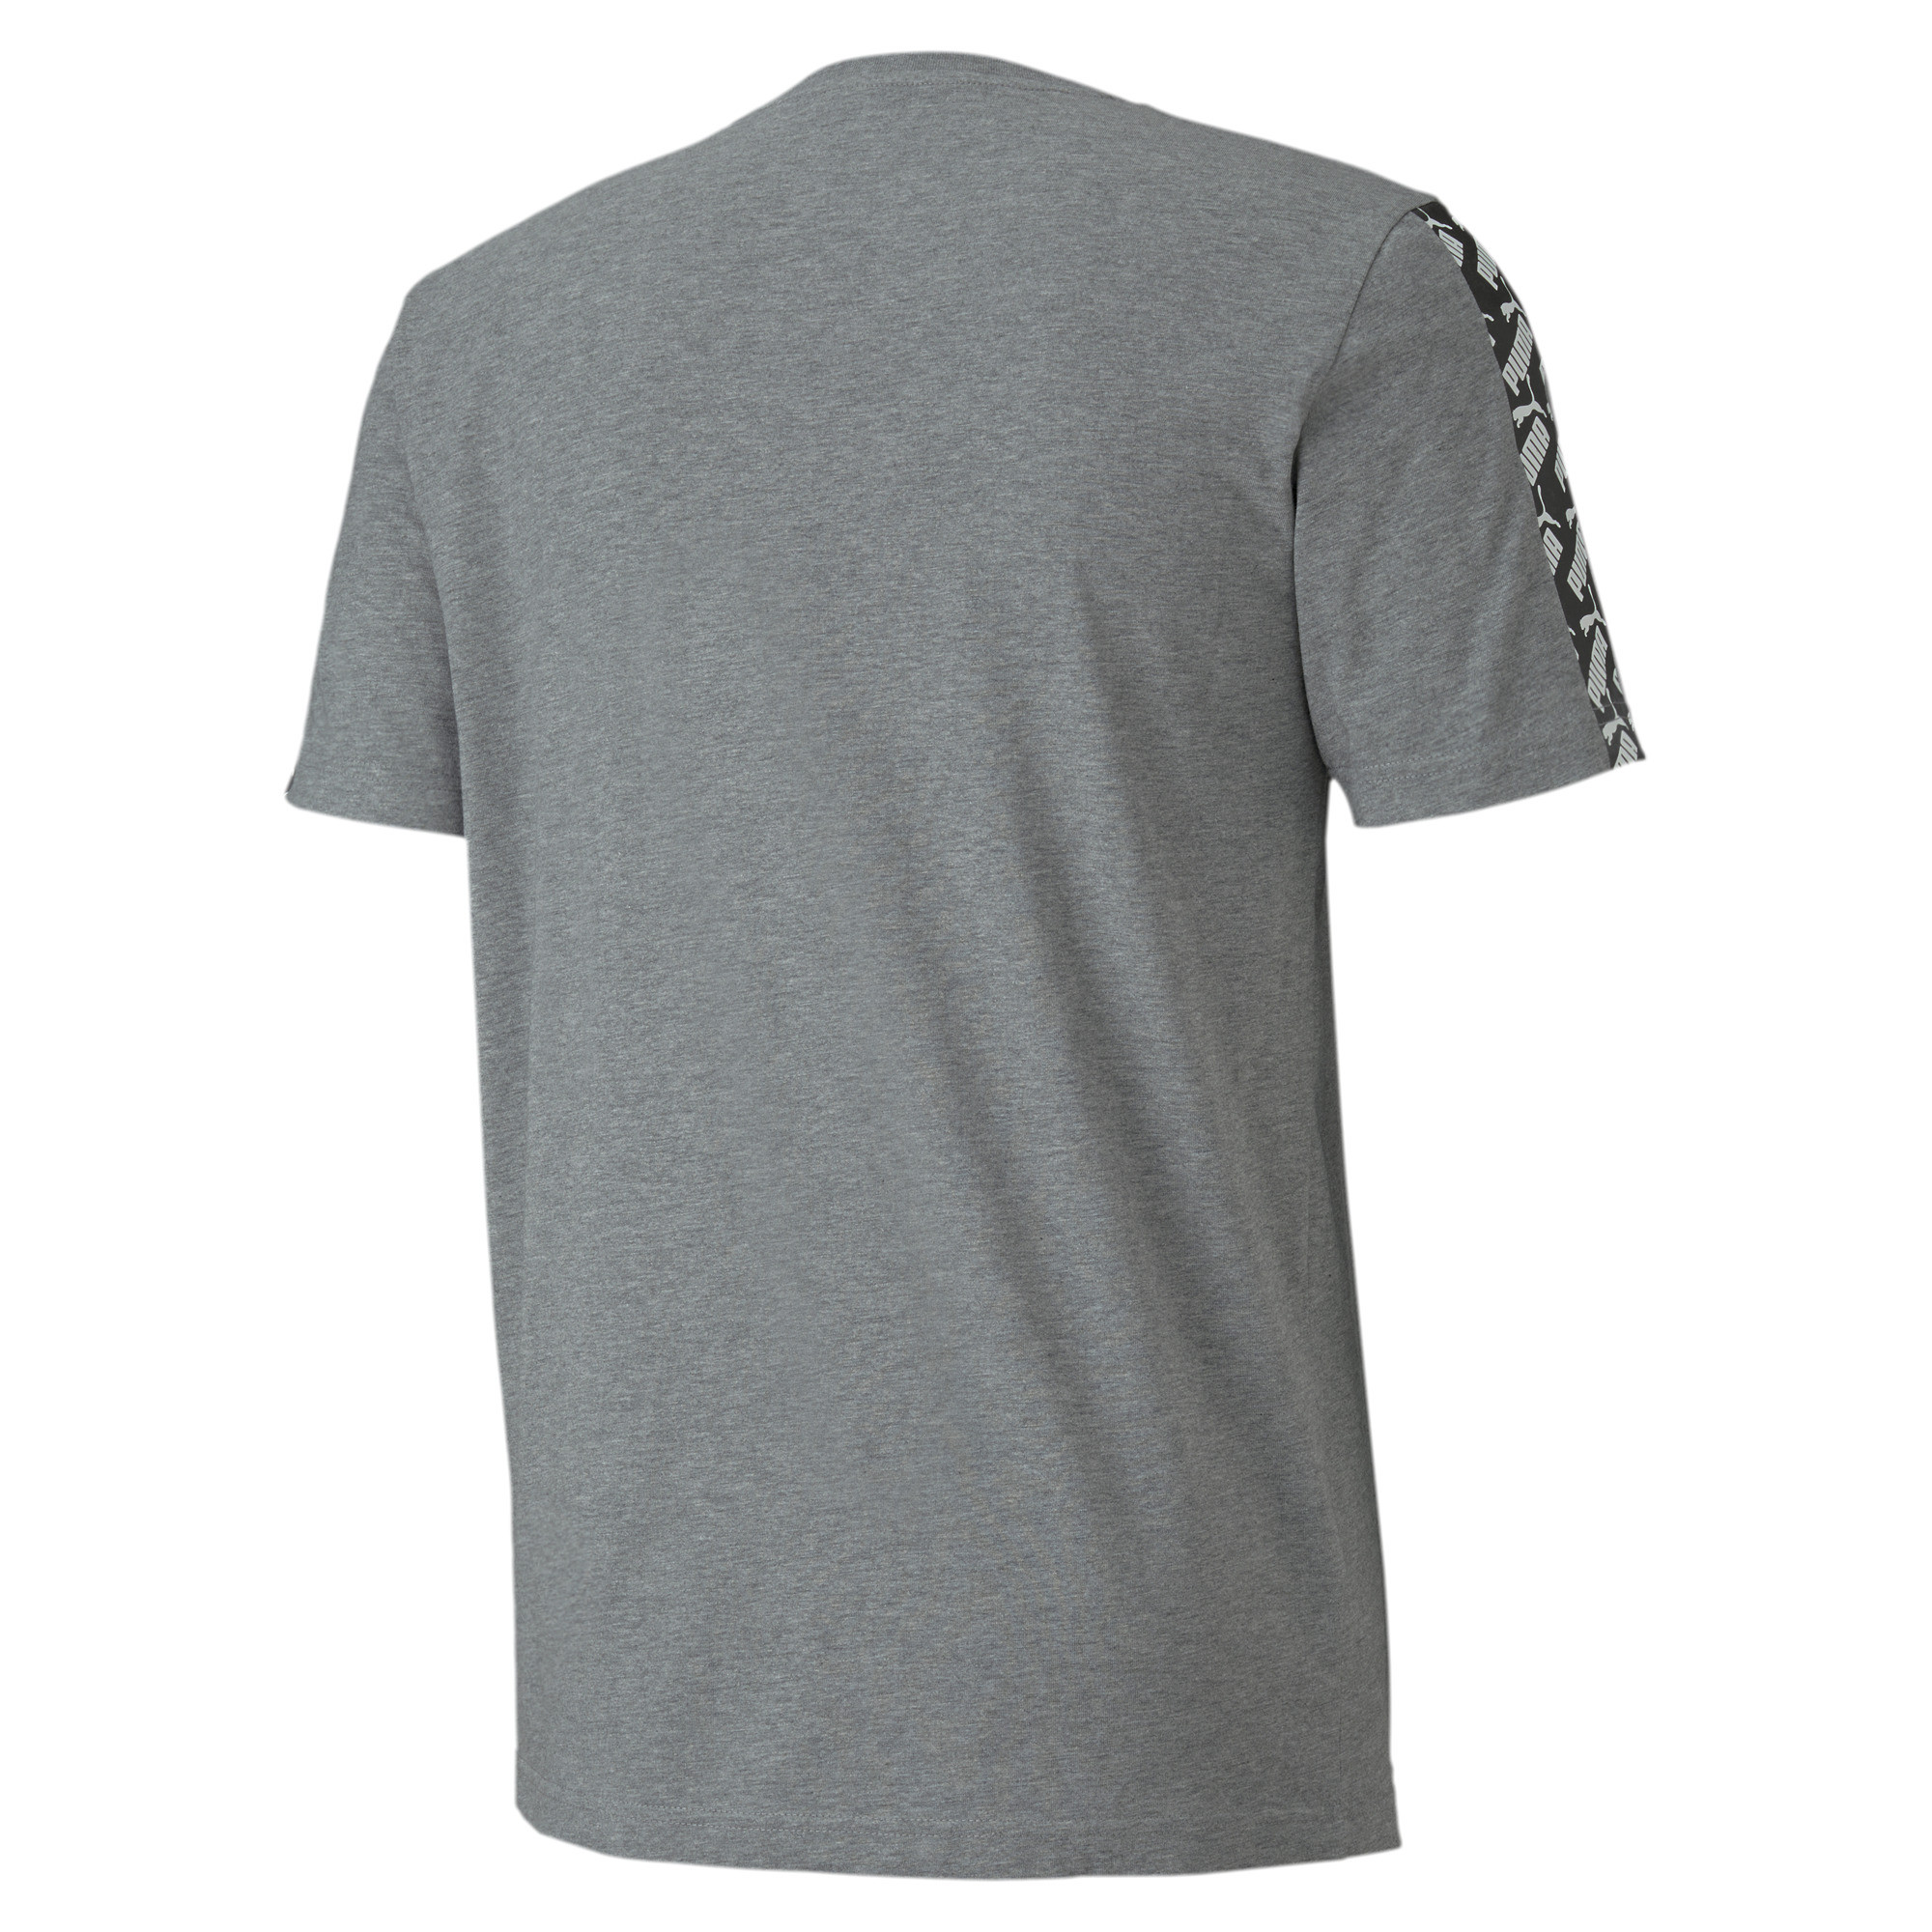 PUMA-Amplified-Men-039-s-Tee-Men-Tee-Basics thumbnail 3